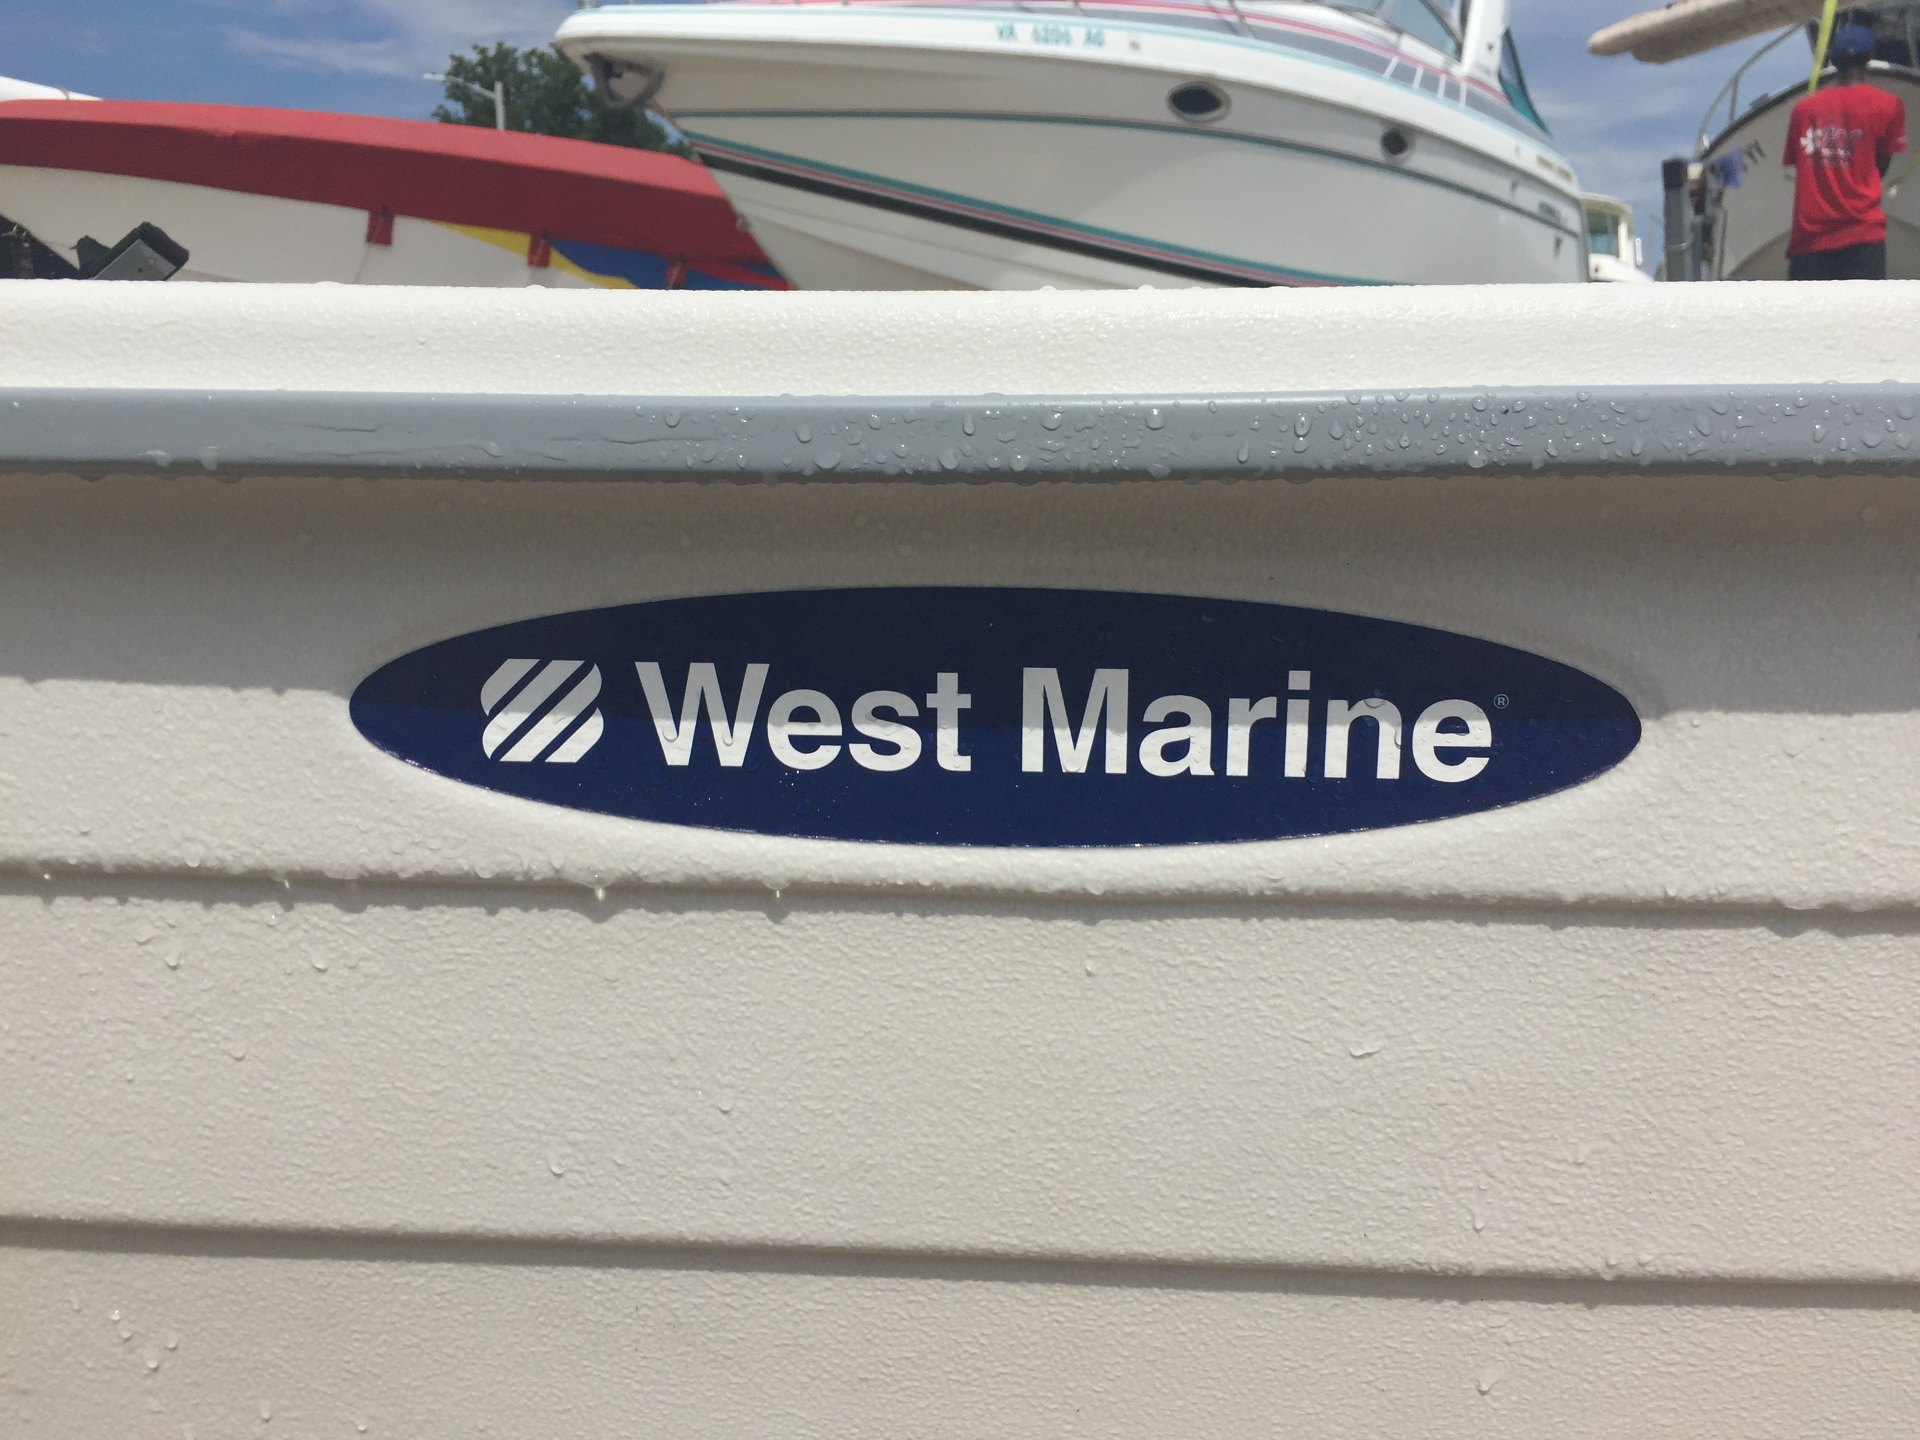 2014 West Marine Classic Dinghy in Norfolk, Virginia